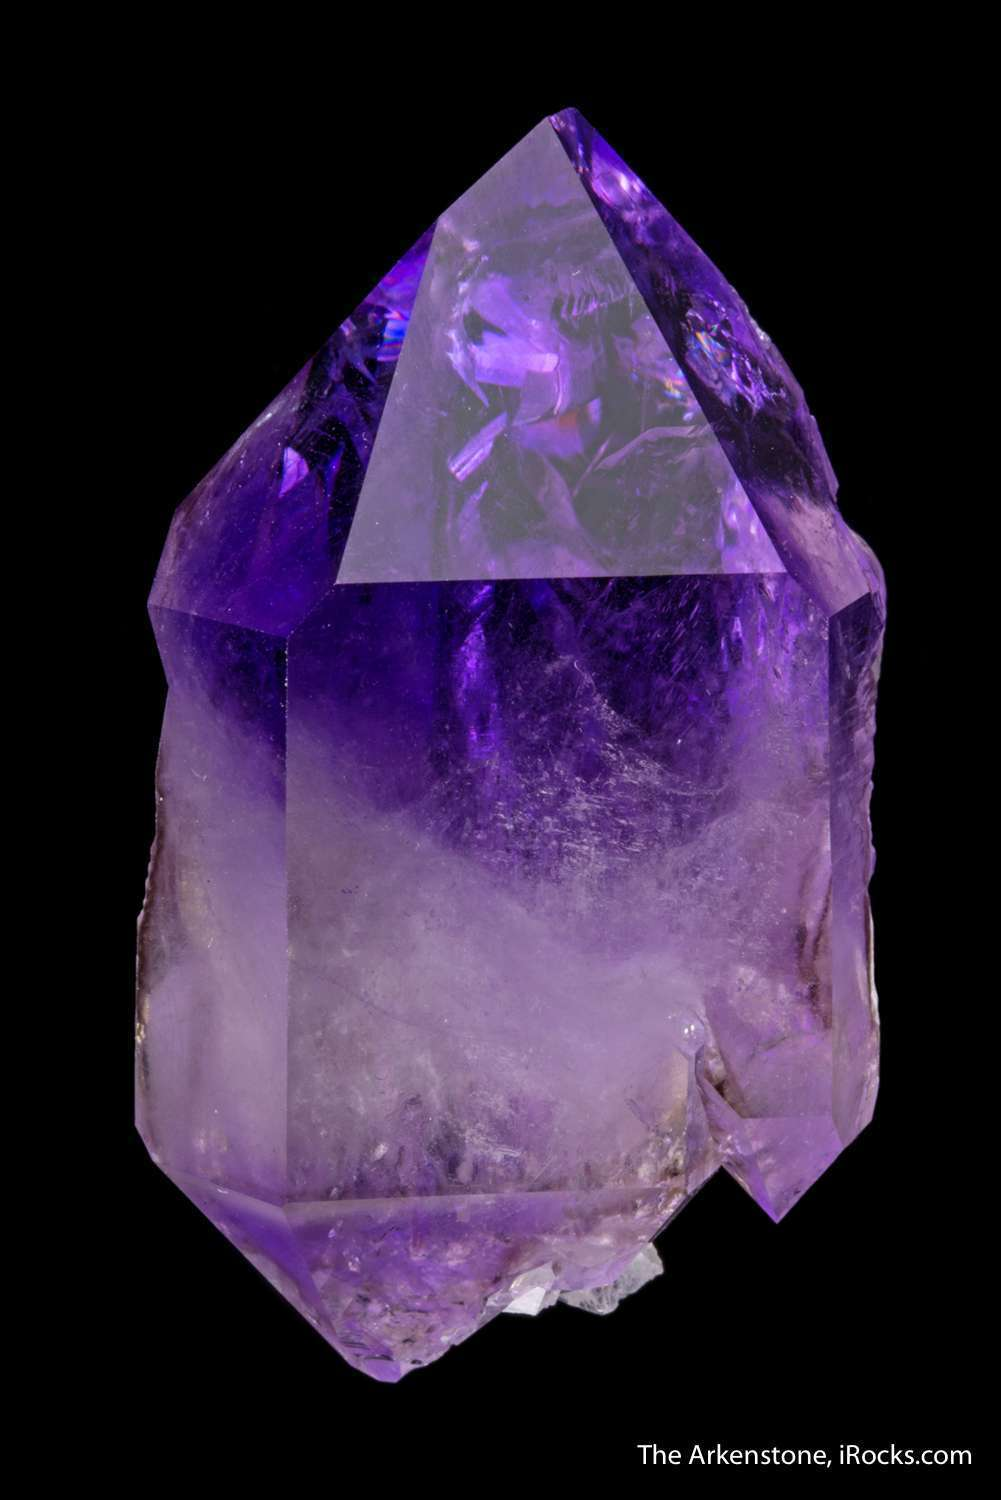 Many consider amethysts small difficult quarry rural northern Georgia